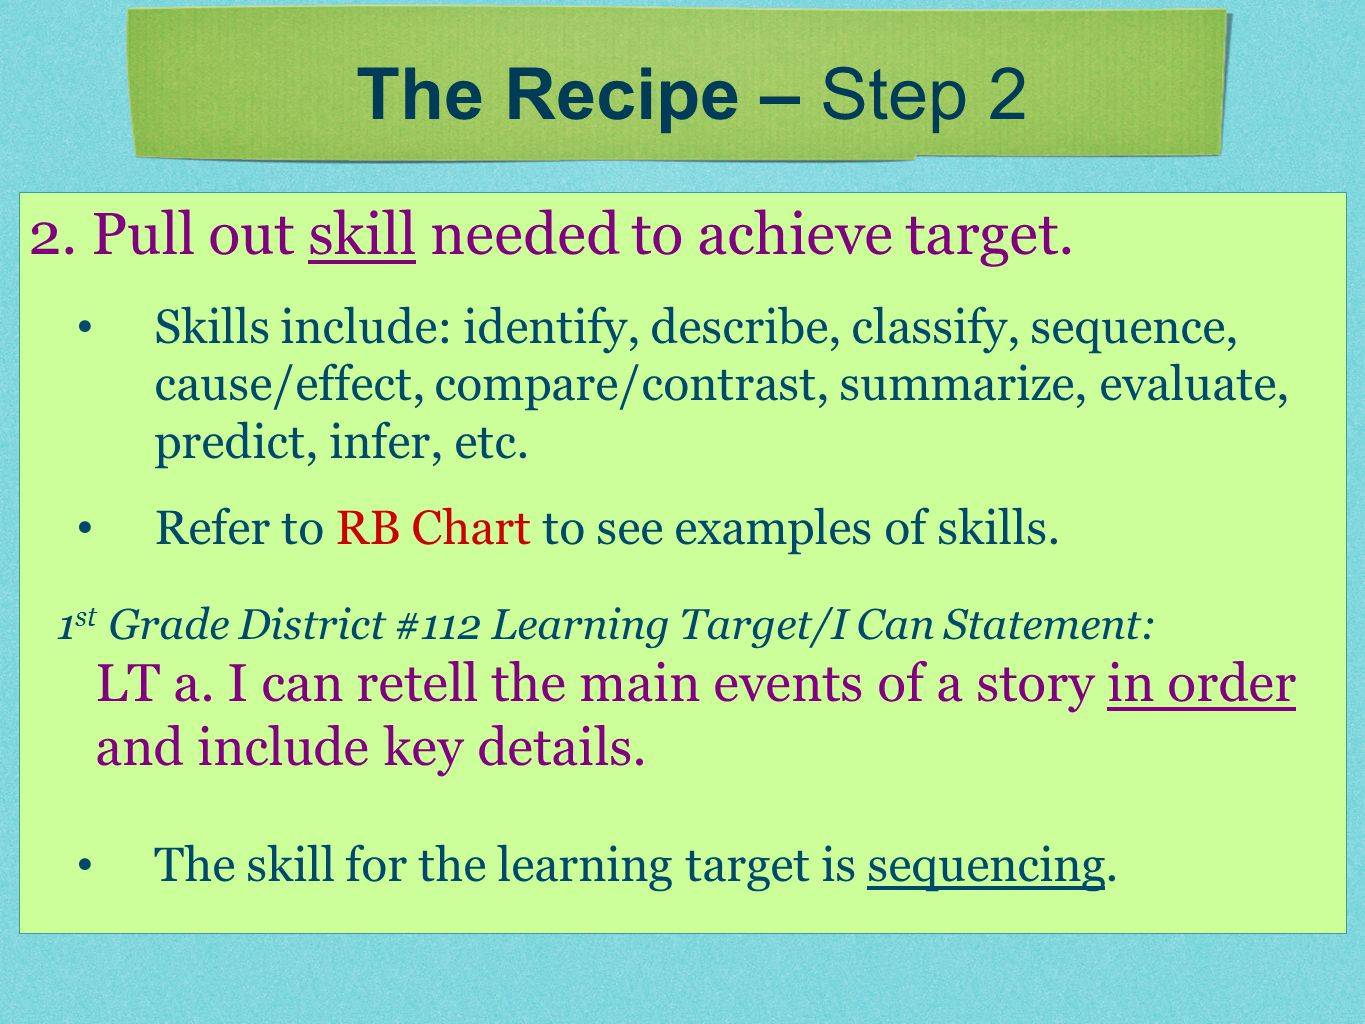 2. Pull out skill needed to achieve target. Skills include: identify, describe, classify, sequence, cause/effect, compare/contrast, summarize, evaluat